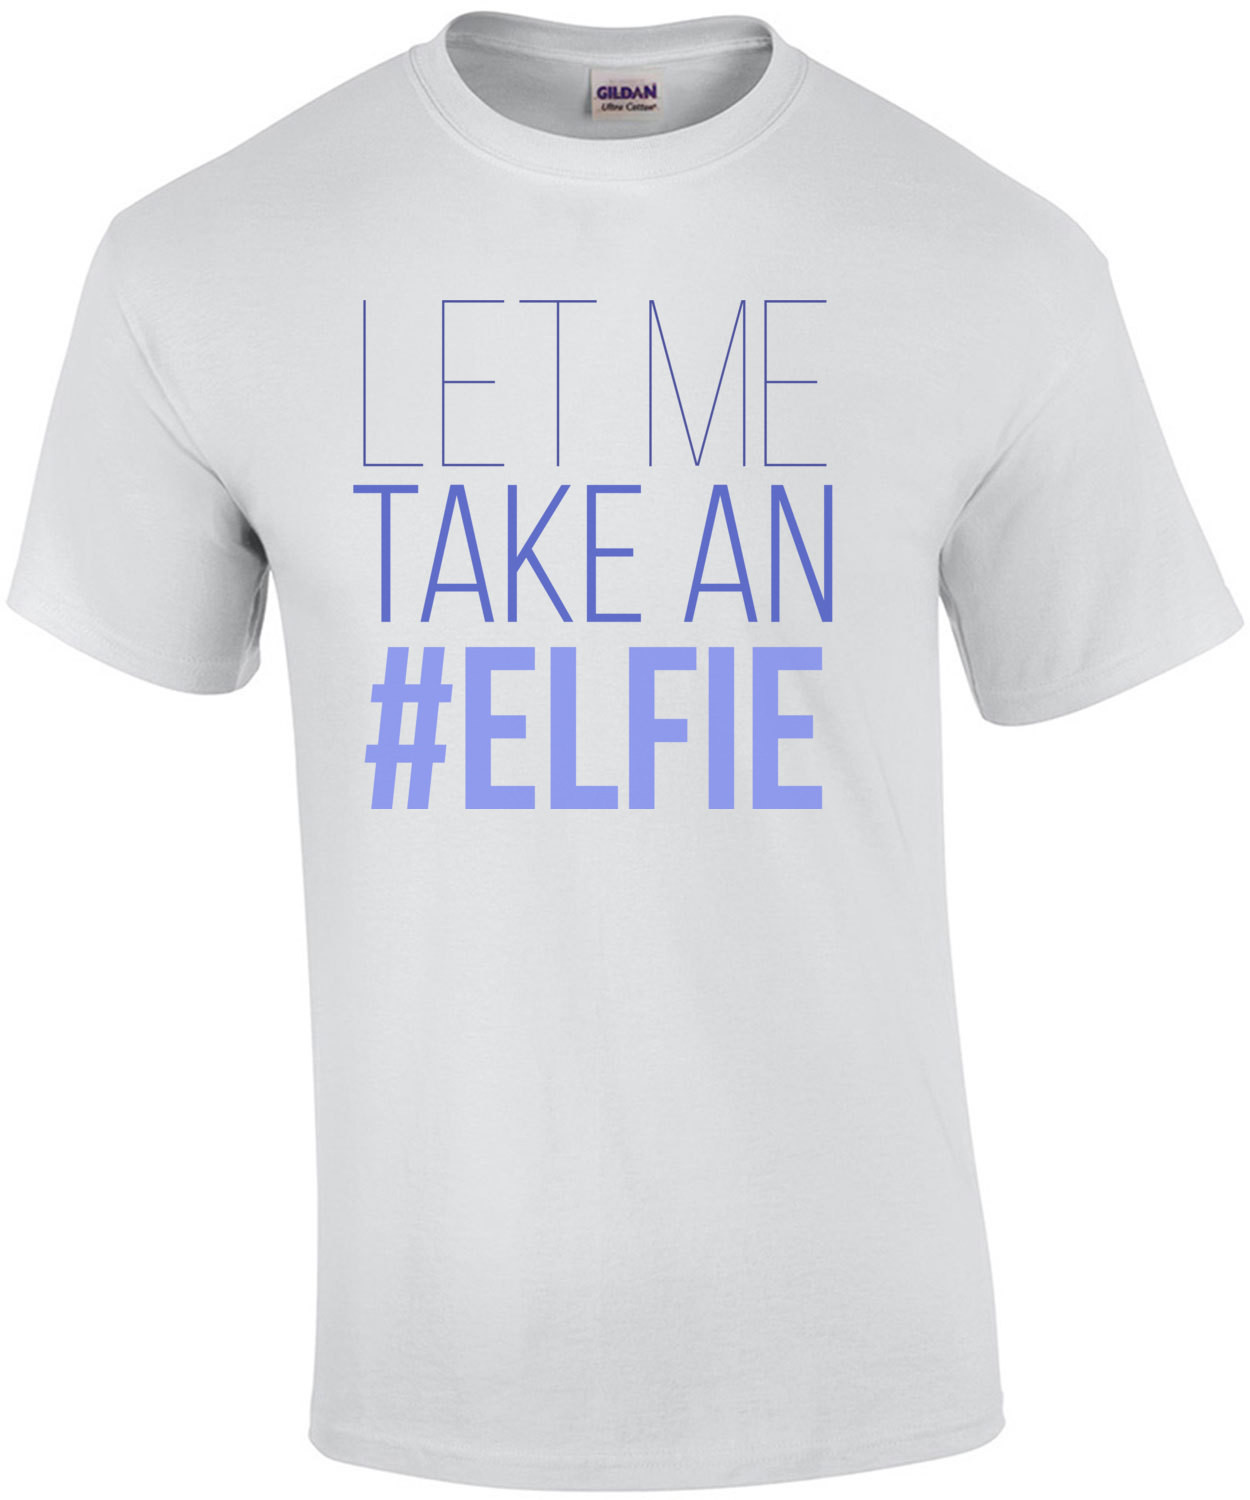 Let me take an #elfie - Christmas T-Shirt